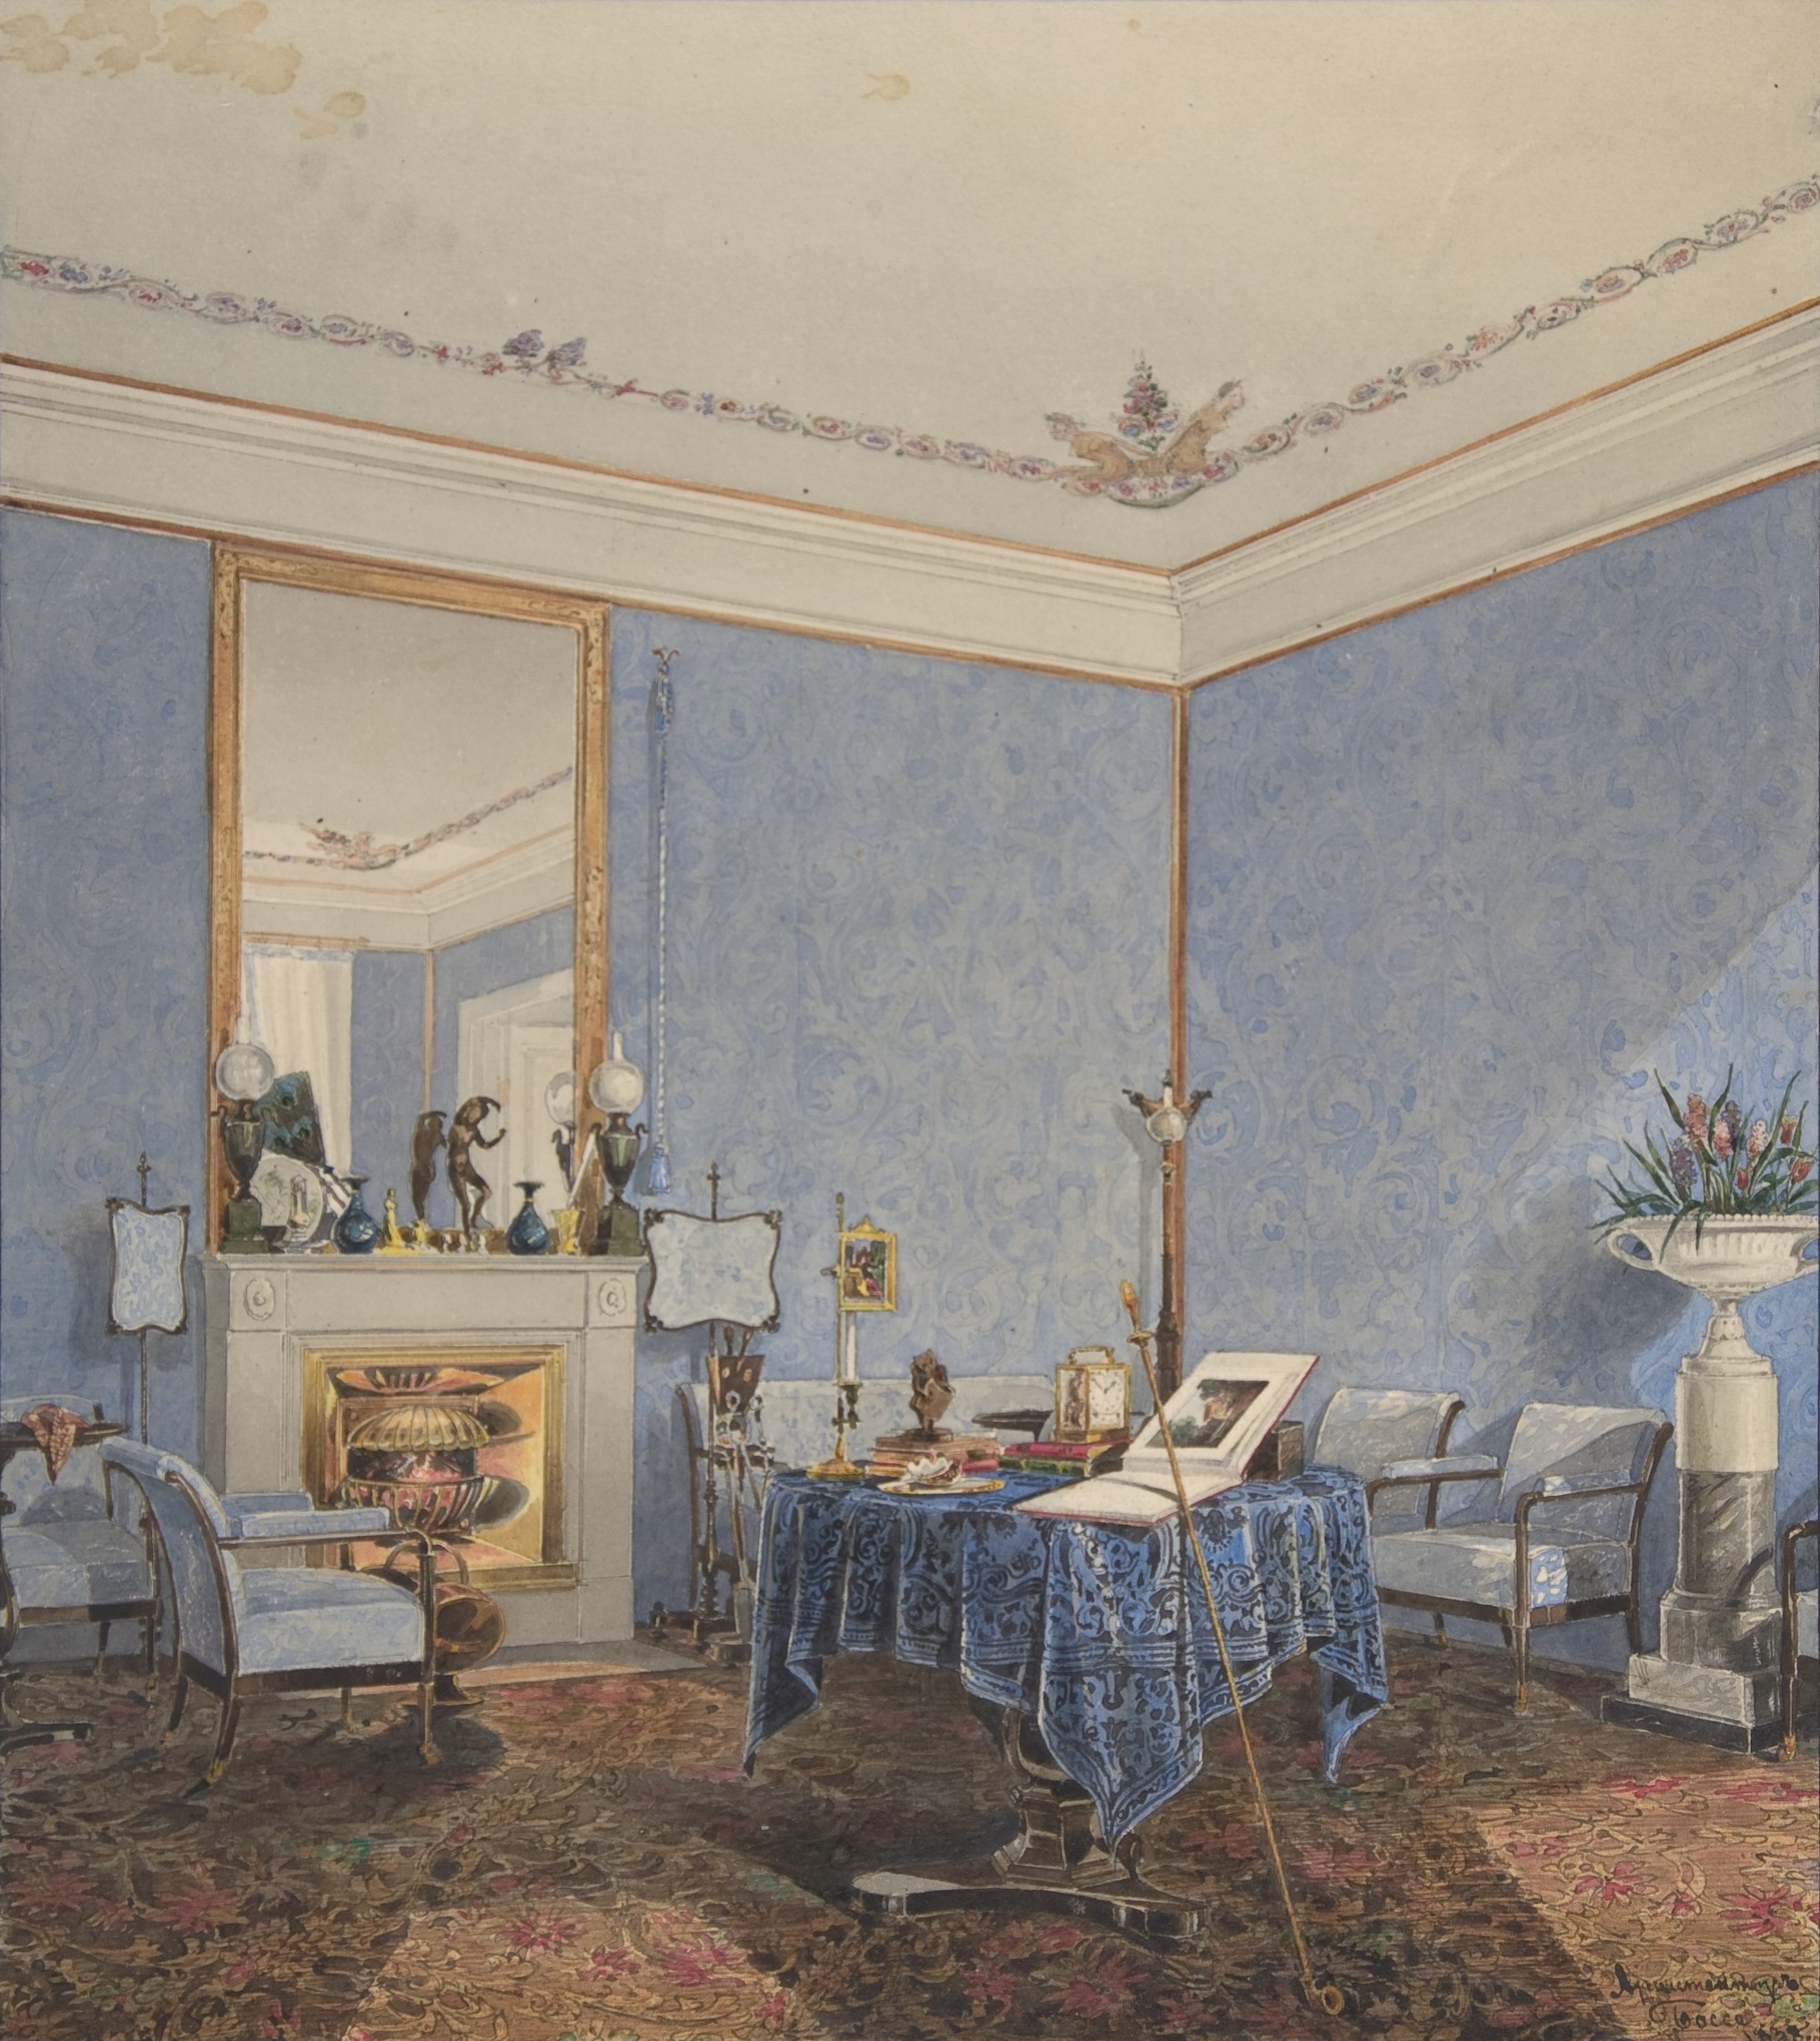 A painting of a large drawing room with pale blue wallpaper and furnishings. On one wall a mirror hangs above a fireplace. In the center of the room is a round table with a blue tablecloth, covered in books and other small objects.